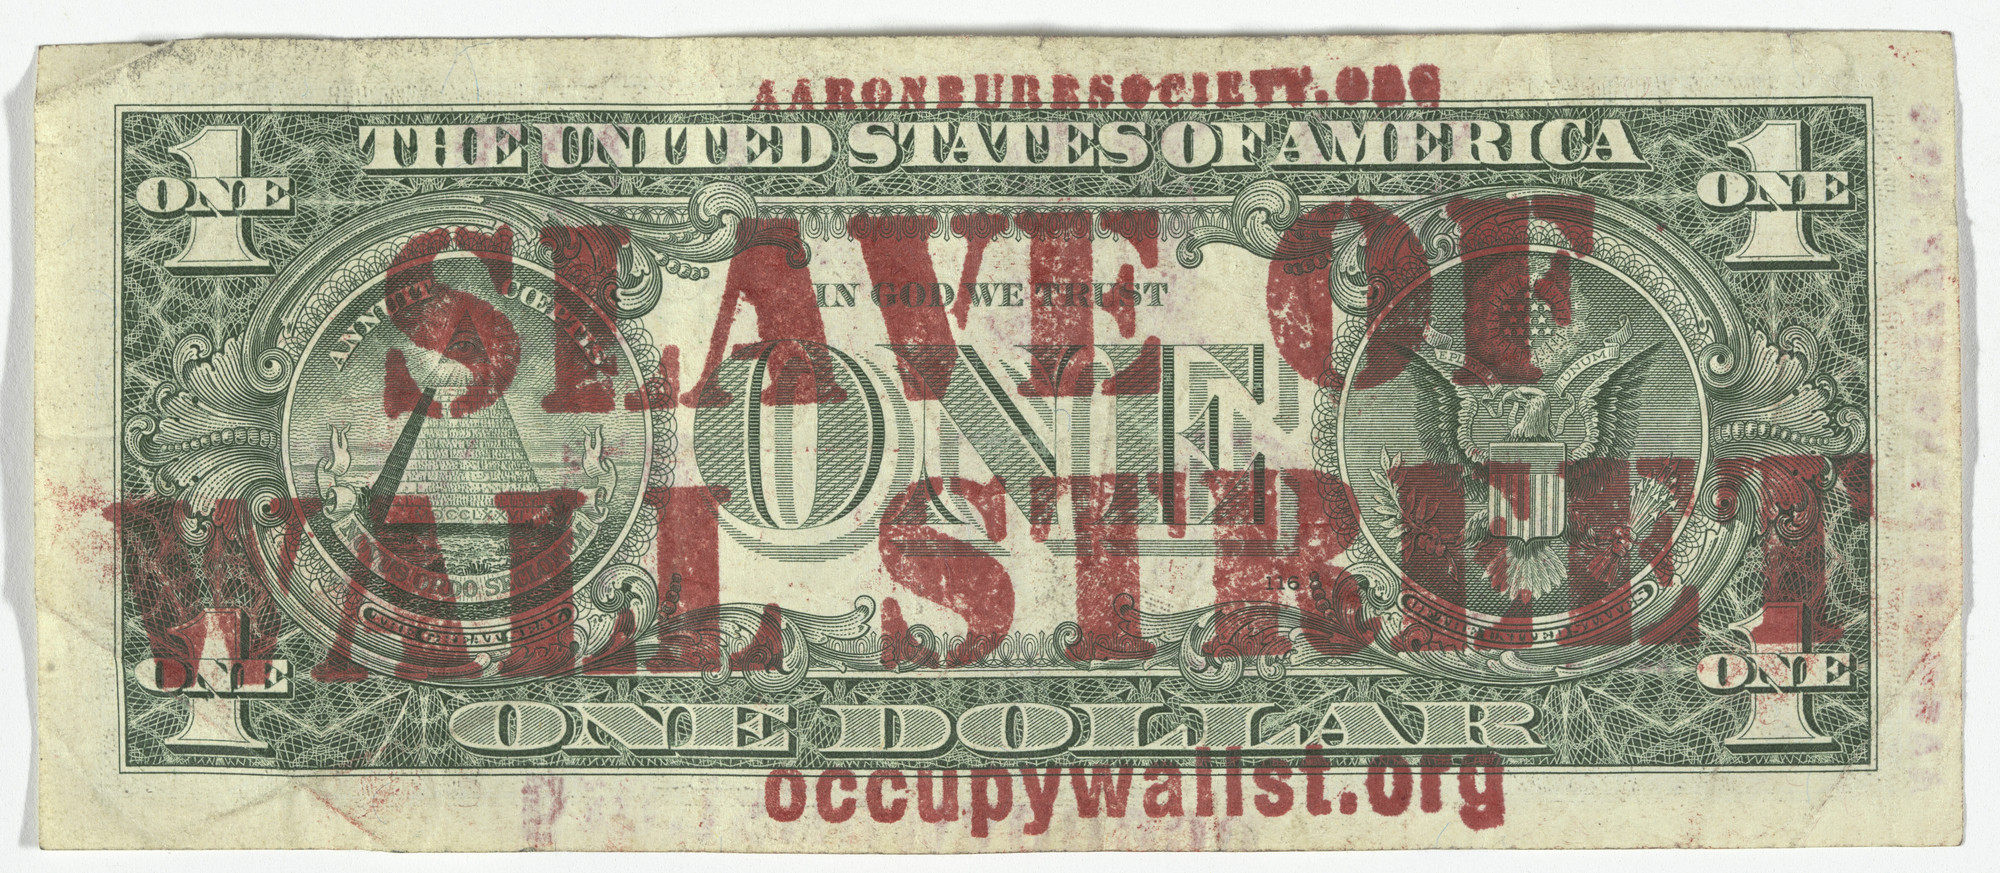 Aaron Burr Society, Jim Costanzo. Free Money Movement. 2009-ongoing